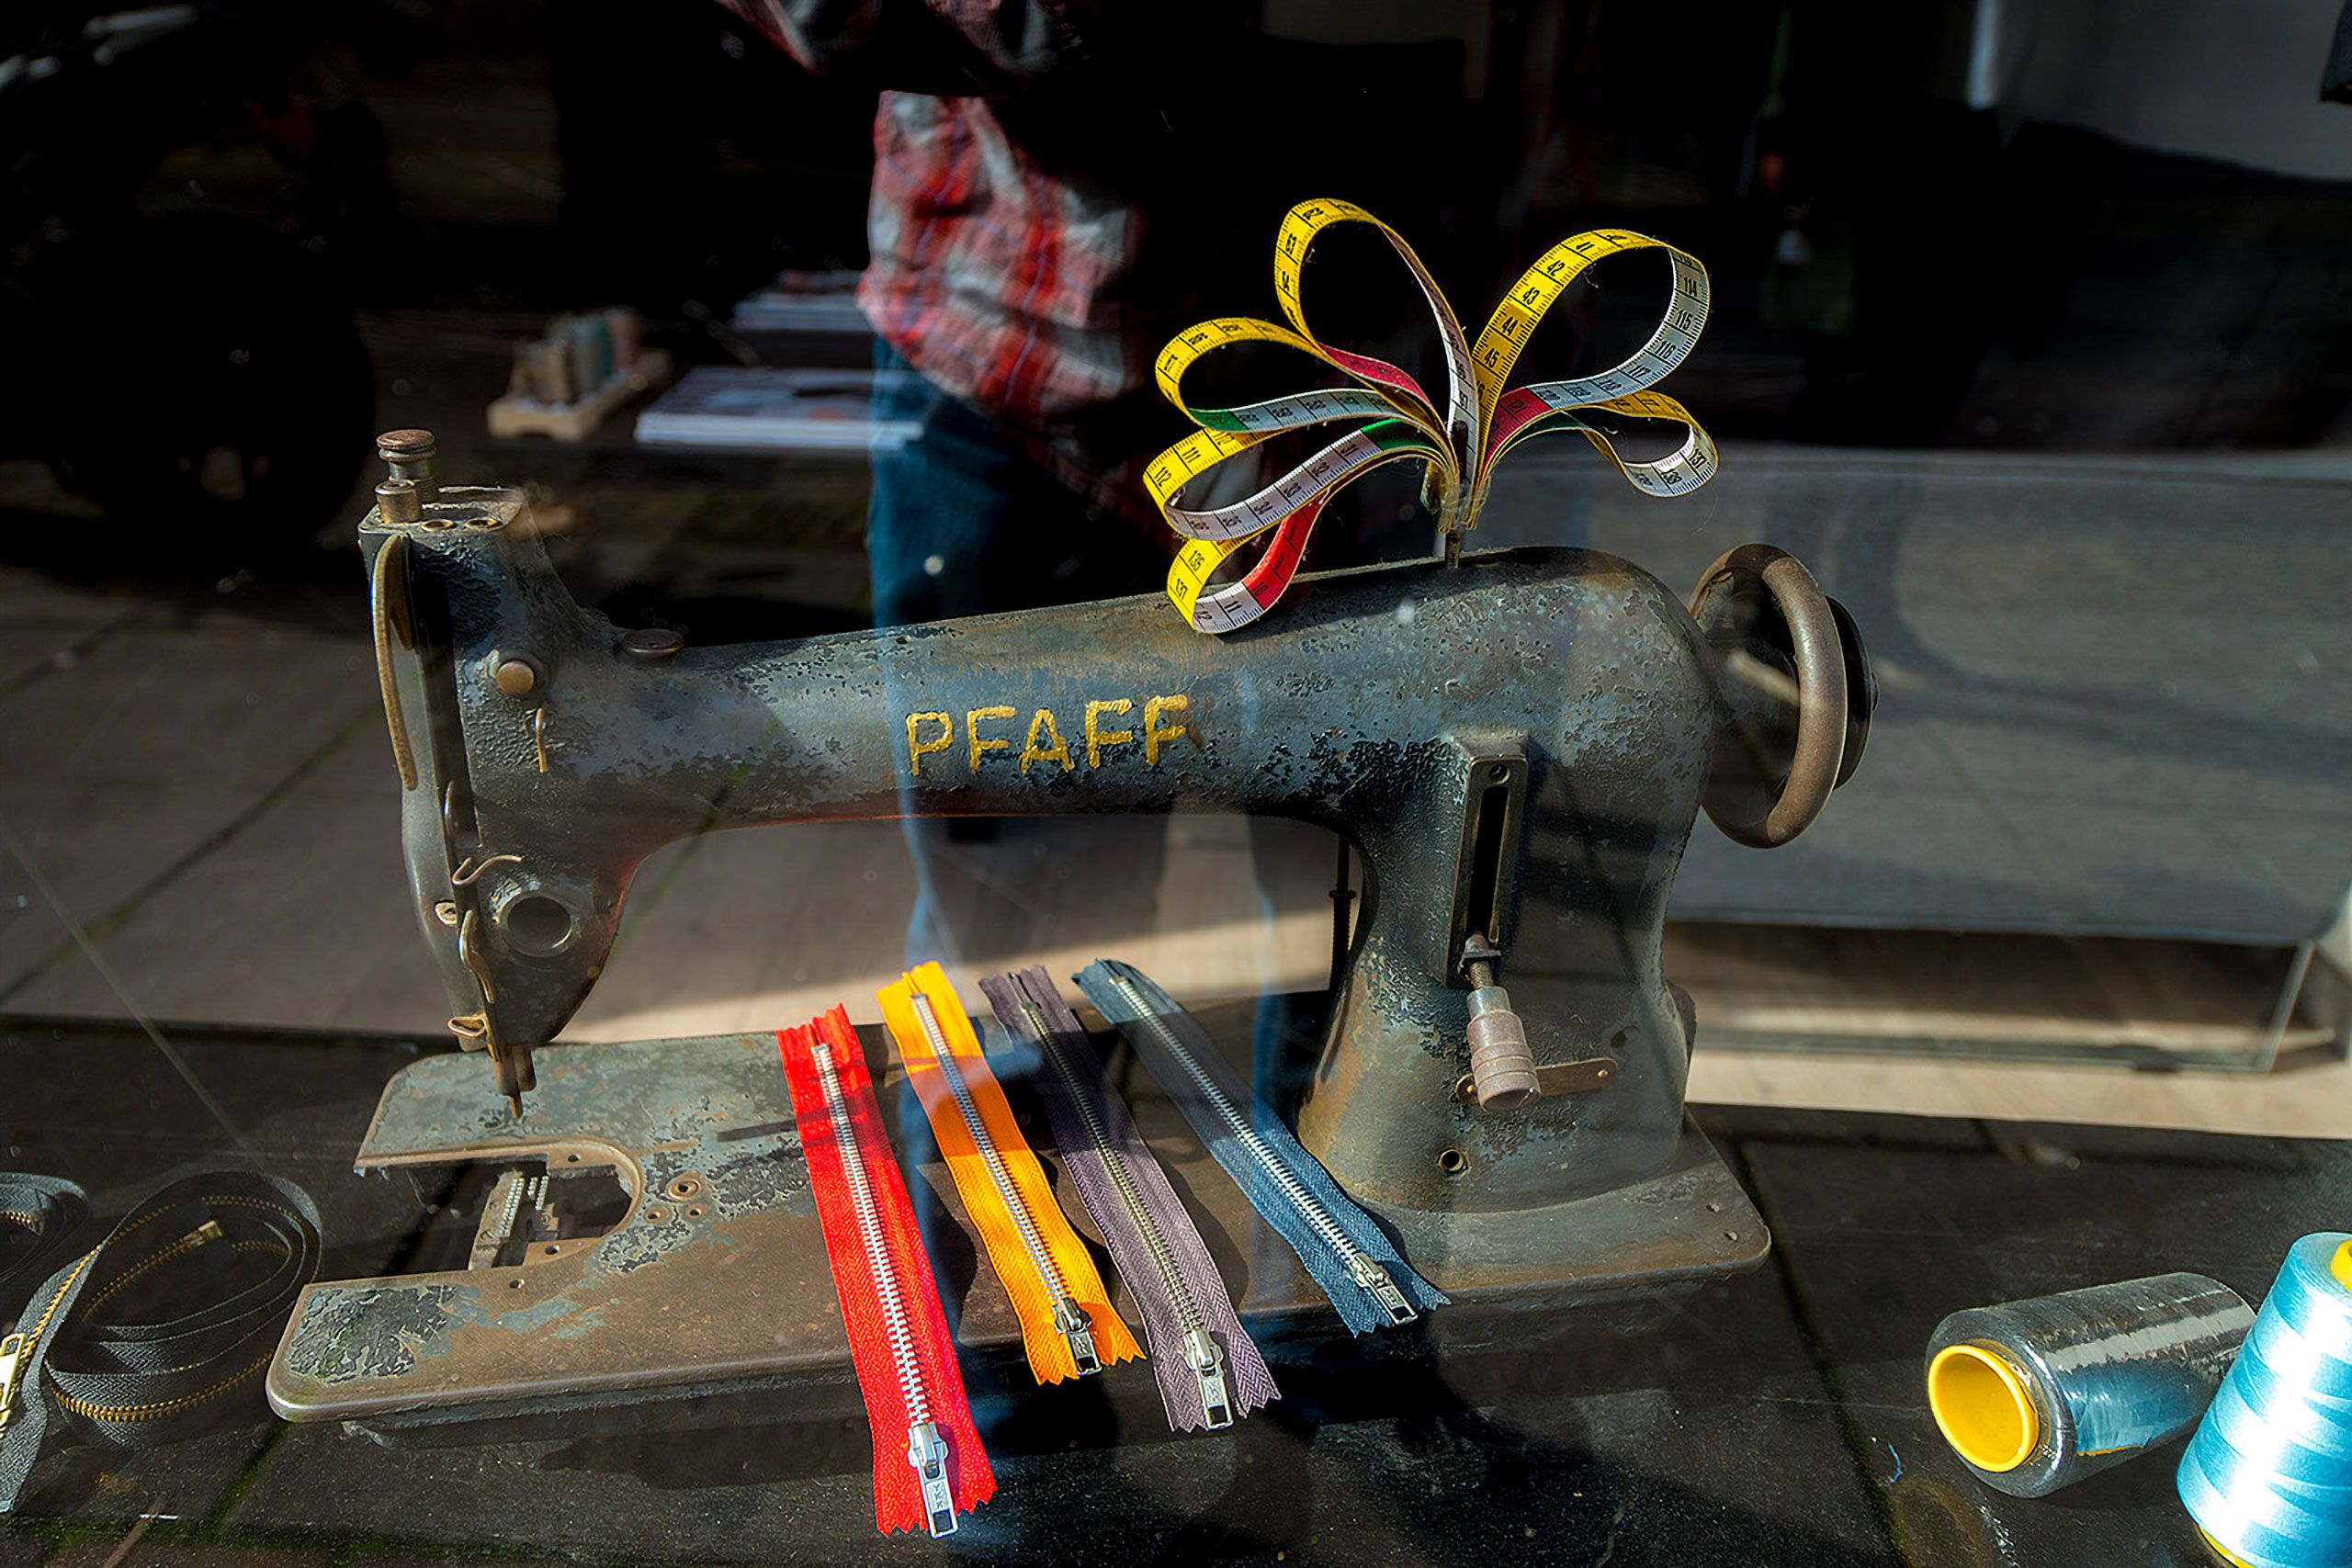 PFAFF Sewing machine and new zippers in shop window in Amsterdam